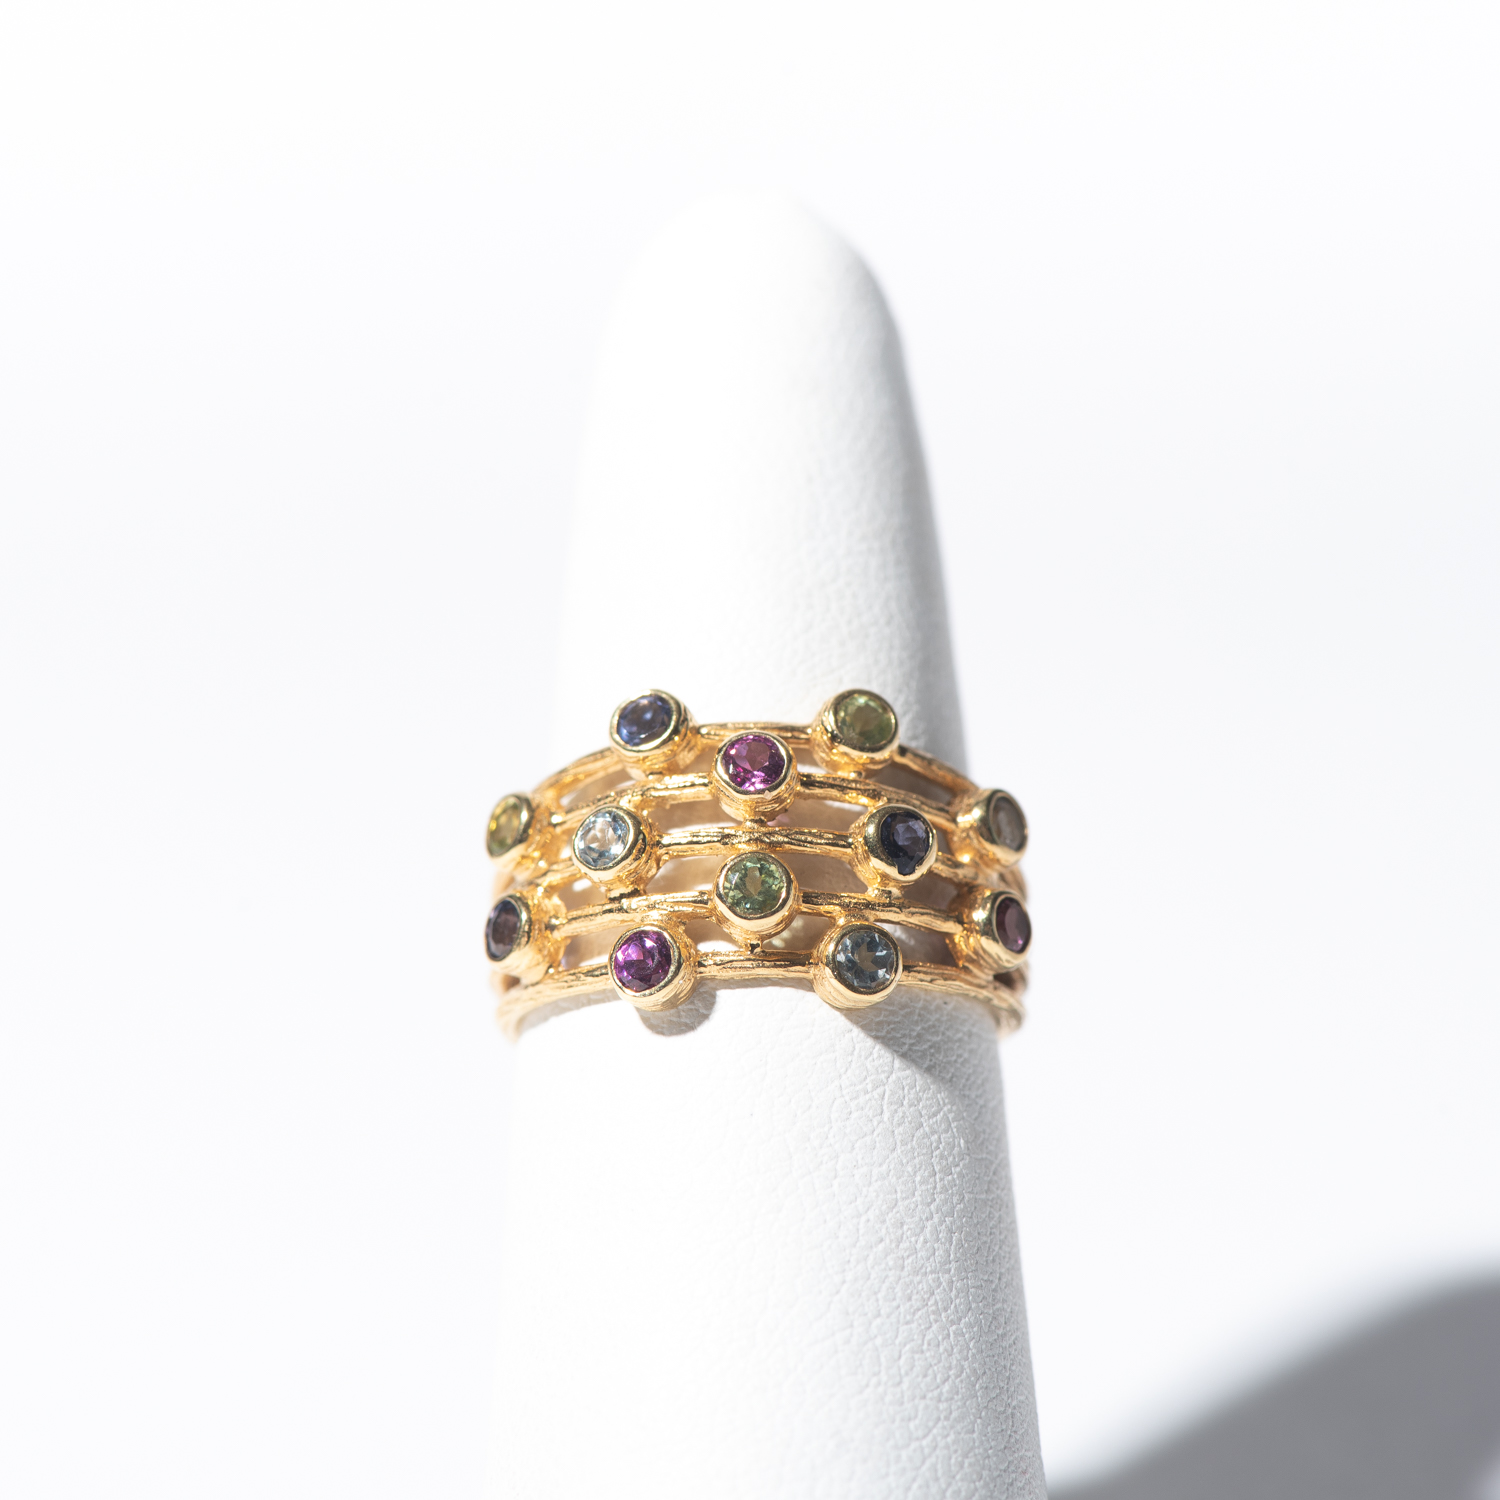 Design Eighteen. - 14K Yellow Gold Multi Color Ring with Bezel Set Stones